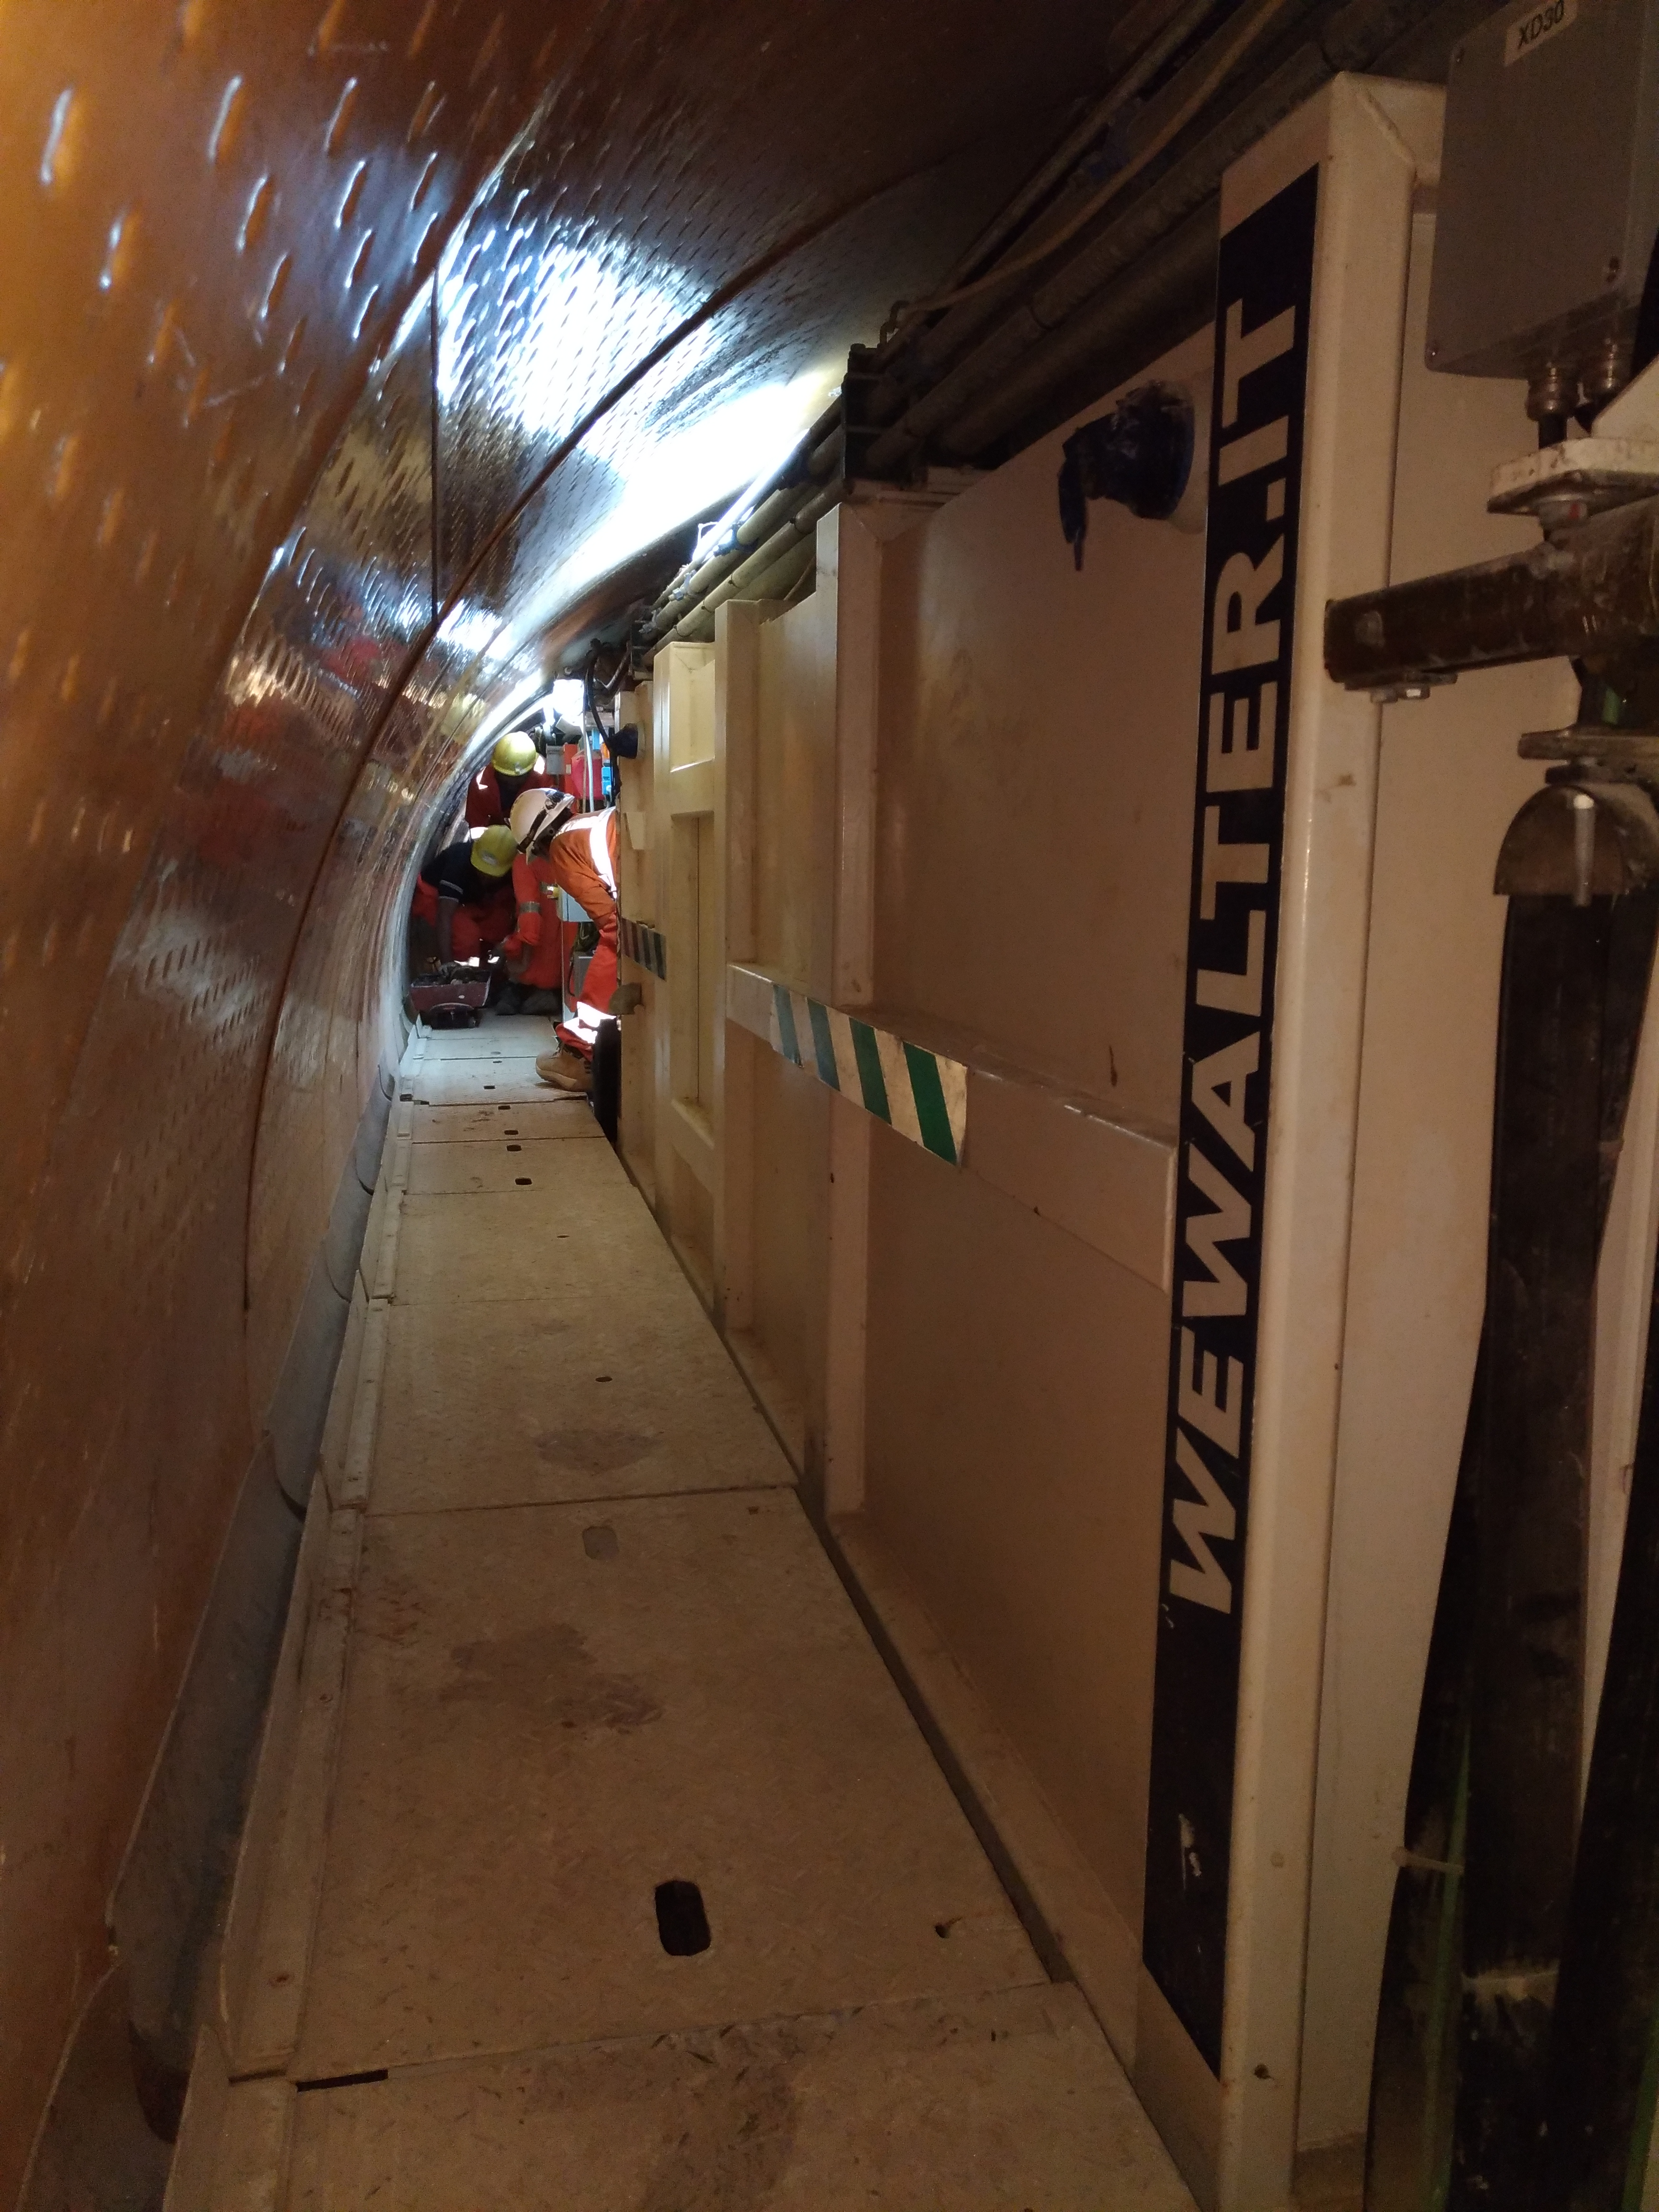 WE Walter Srl refuge Chamber Engeenered For Idris Project, Doha. particular view from the side of the tunnel.